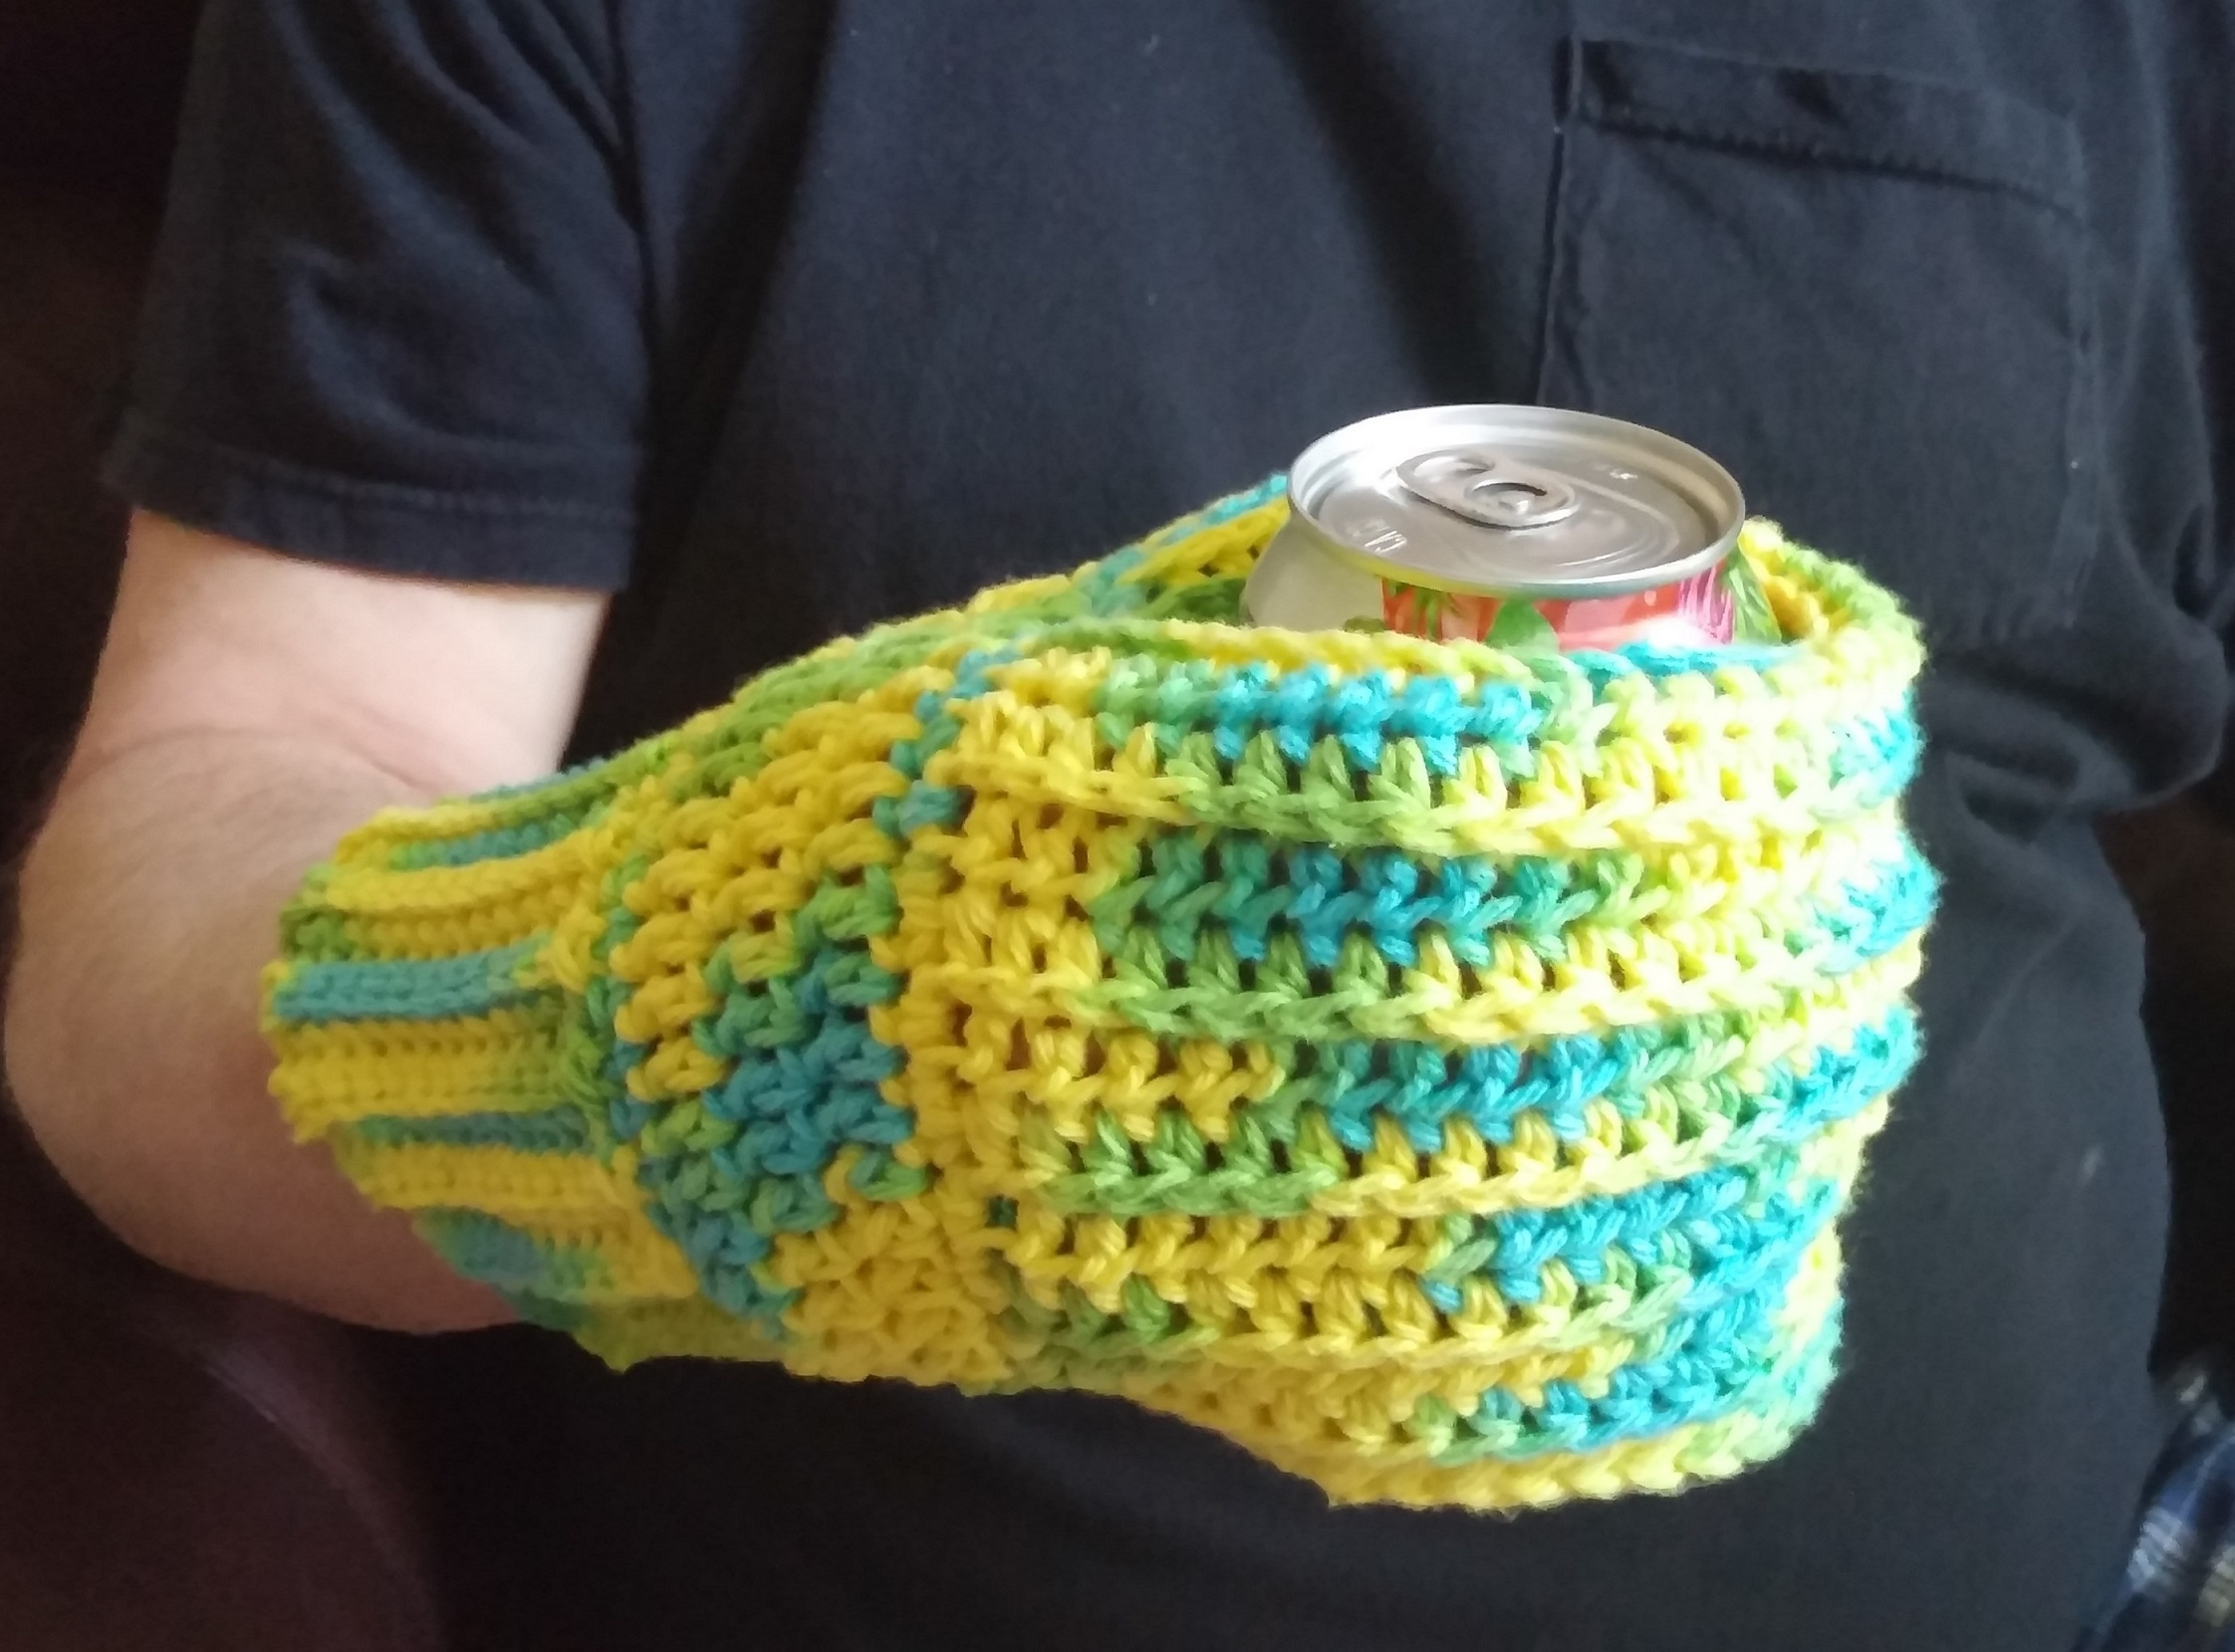 Shop wendis workbasket worked all in one piece with only two ends to sew in this mitt makes a great gift the inner sleeve fits snugly around a can or bottle and the outer glove bankloansurffo Choice Image